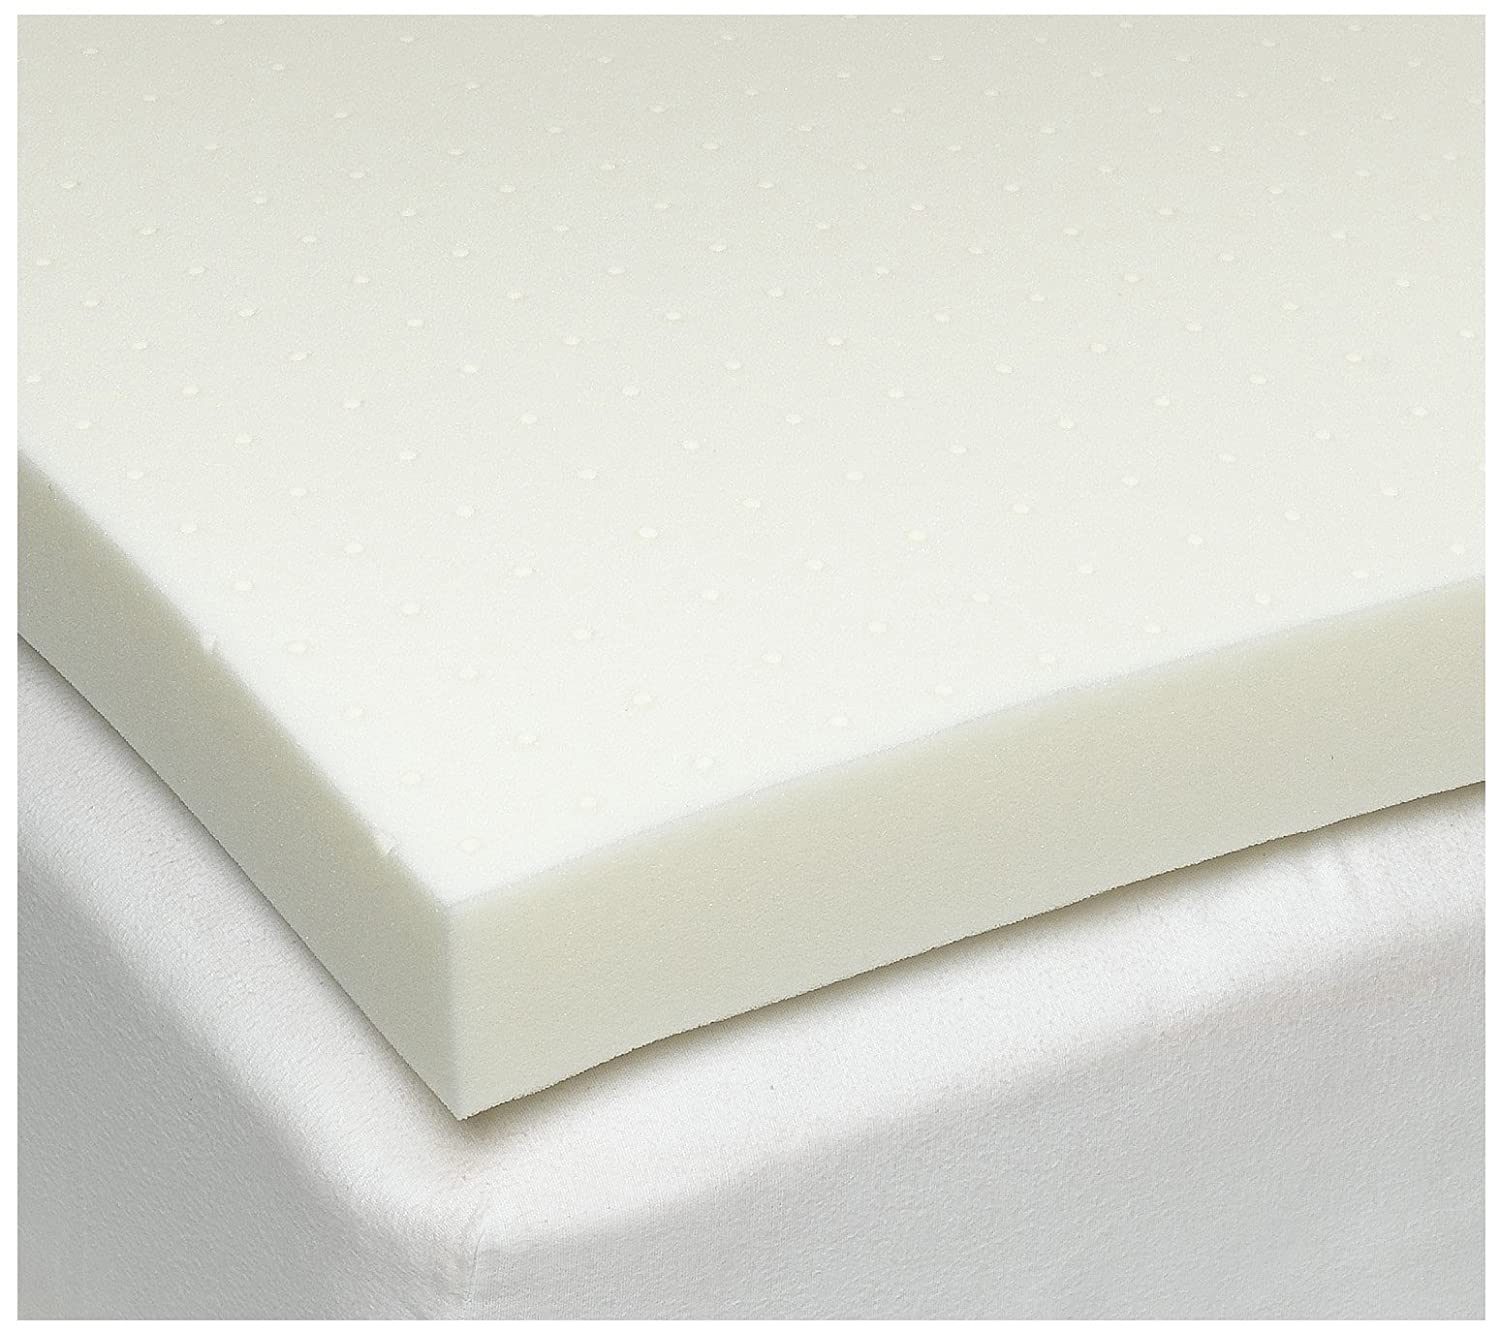 Who Sells The Cheapest Contour Pillow Included With Cal-King 1.5 Inch Soft Sleeper 6.5 Visco Elastic Memory Foam Mattress Topper USA... On Line